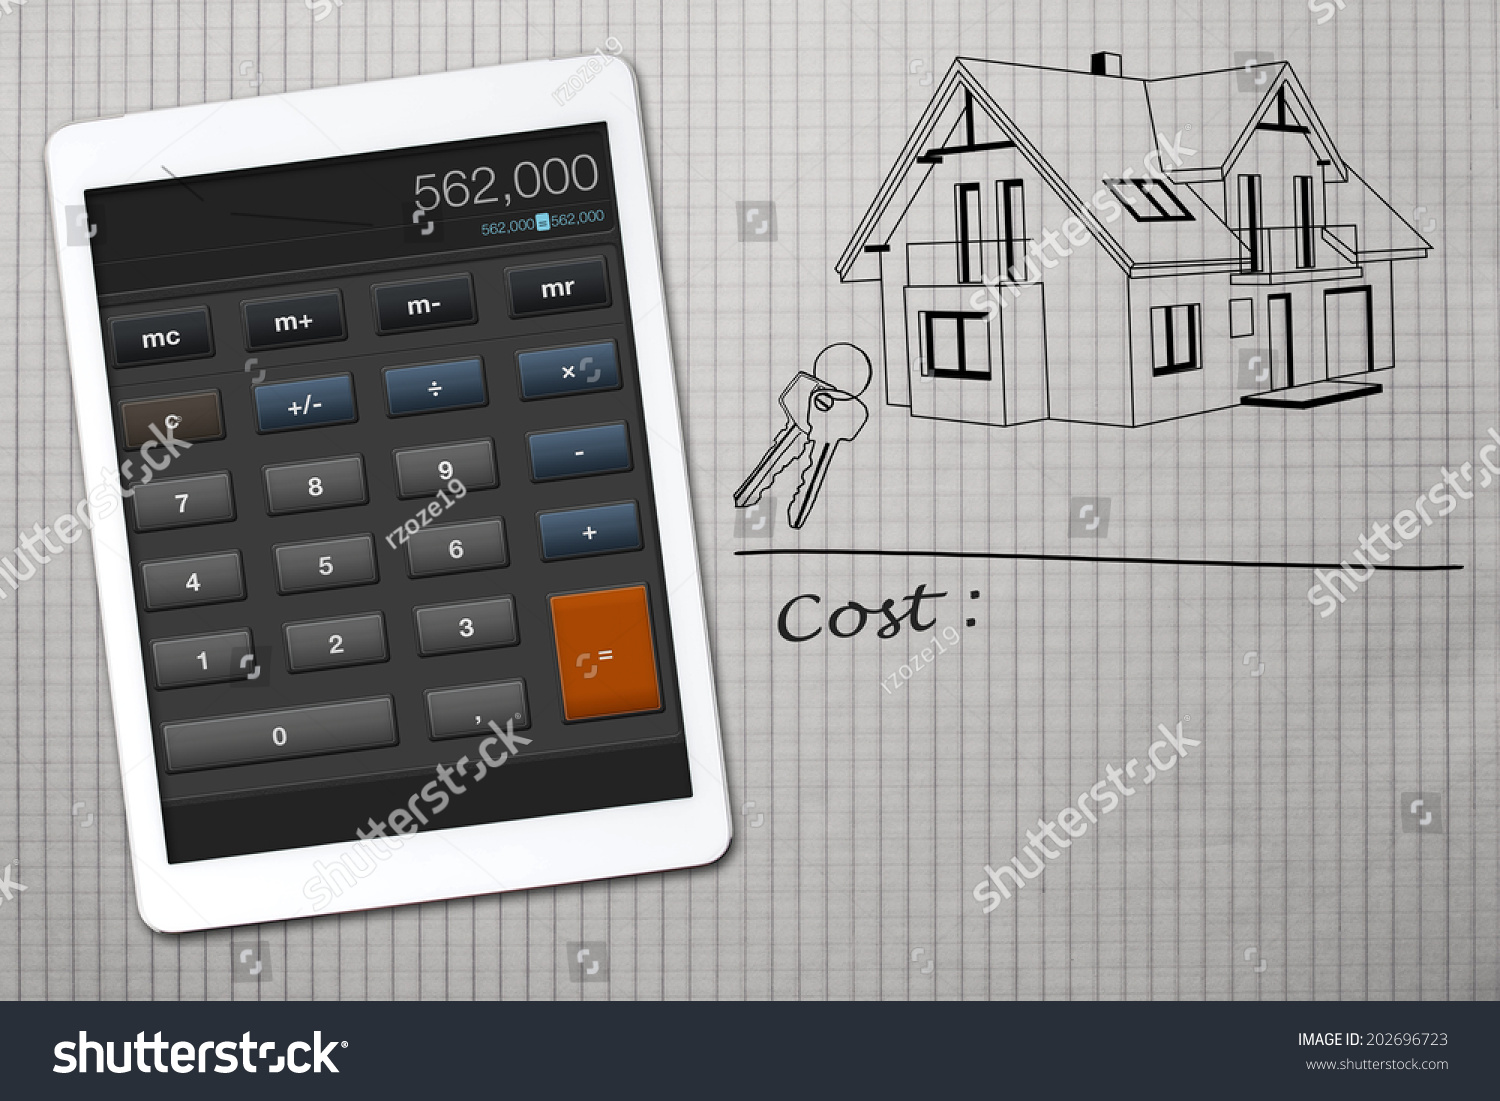 Home construction cost calculator stock photo 202696723 for Build my home calculator